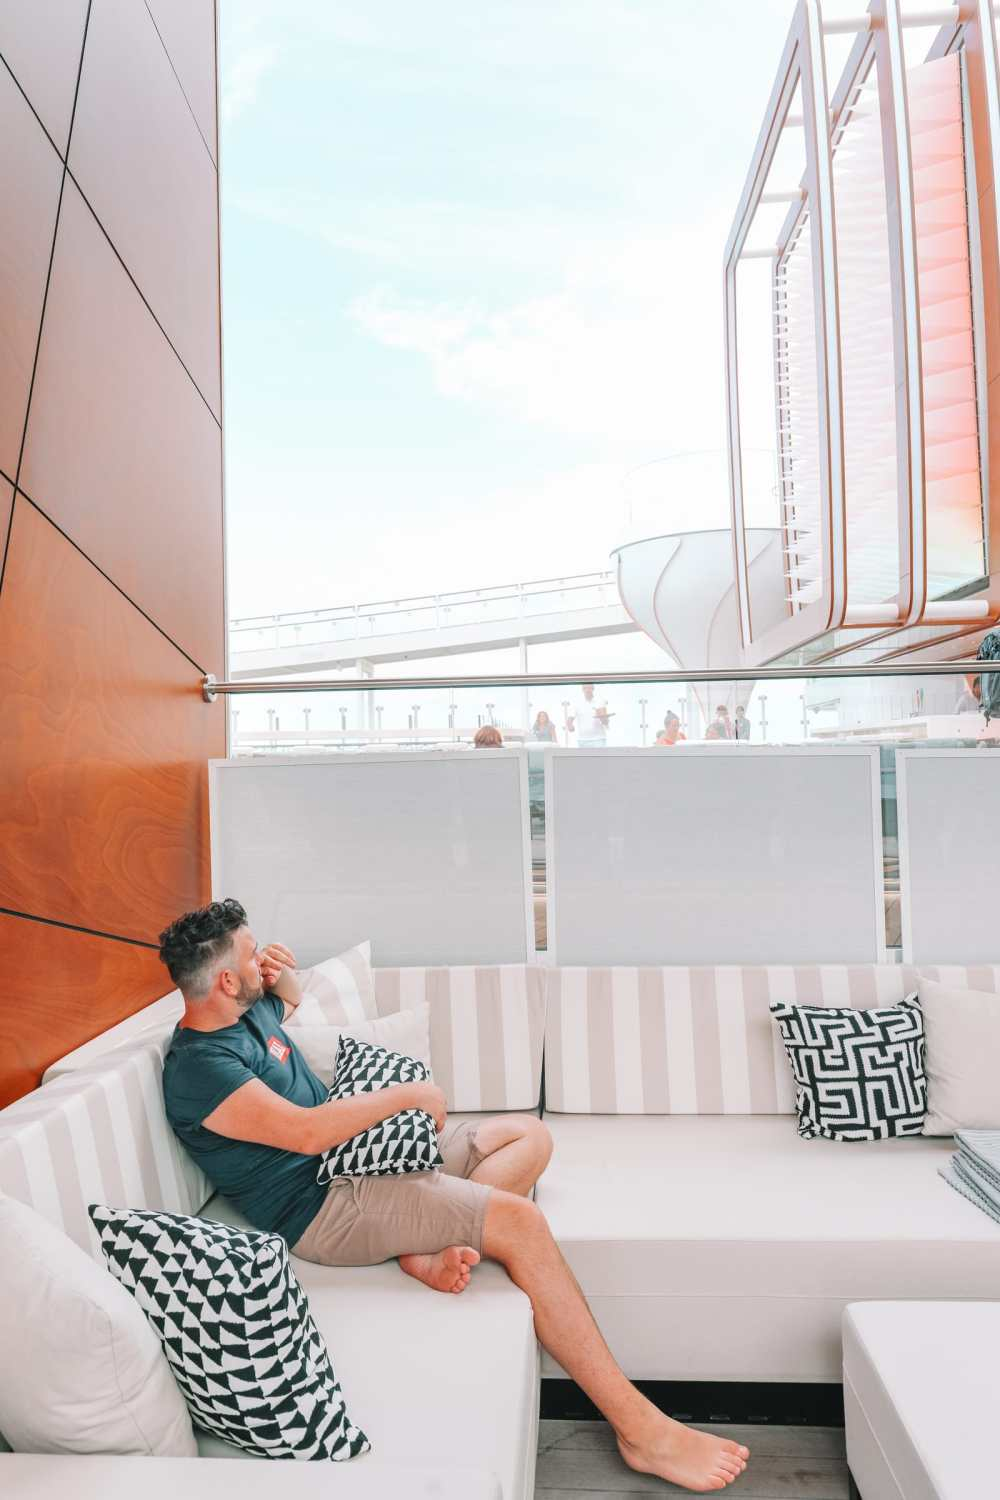 Celebrity Edge Cruise: What Is It Really Like? (11)